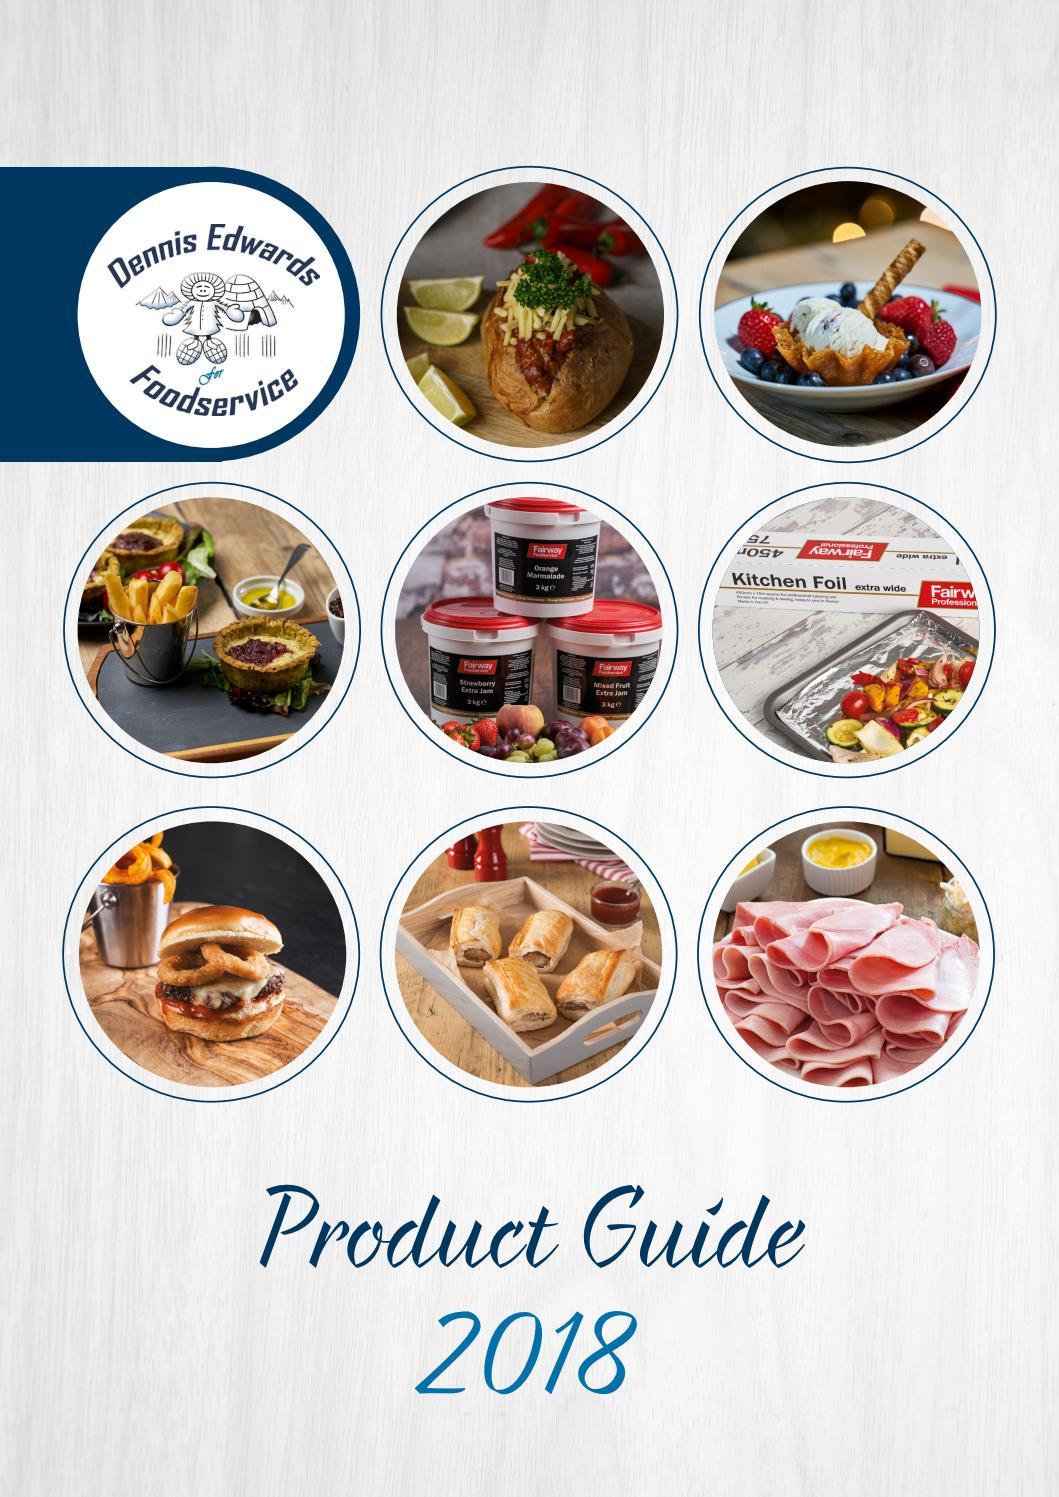 Dennis Edwards Product Guide 2018 By Infotech Studio Issuu